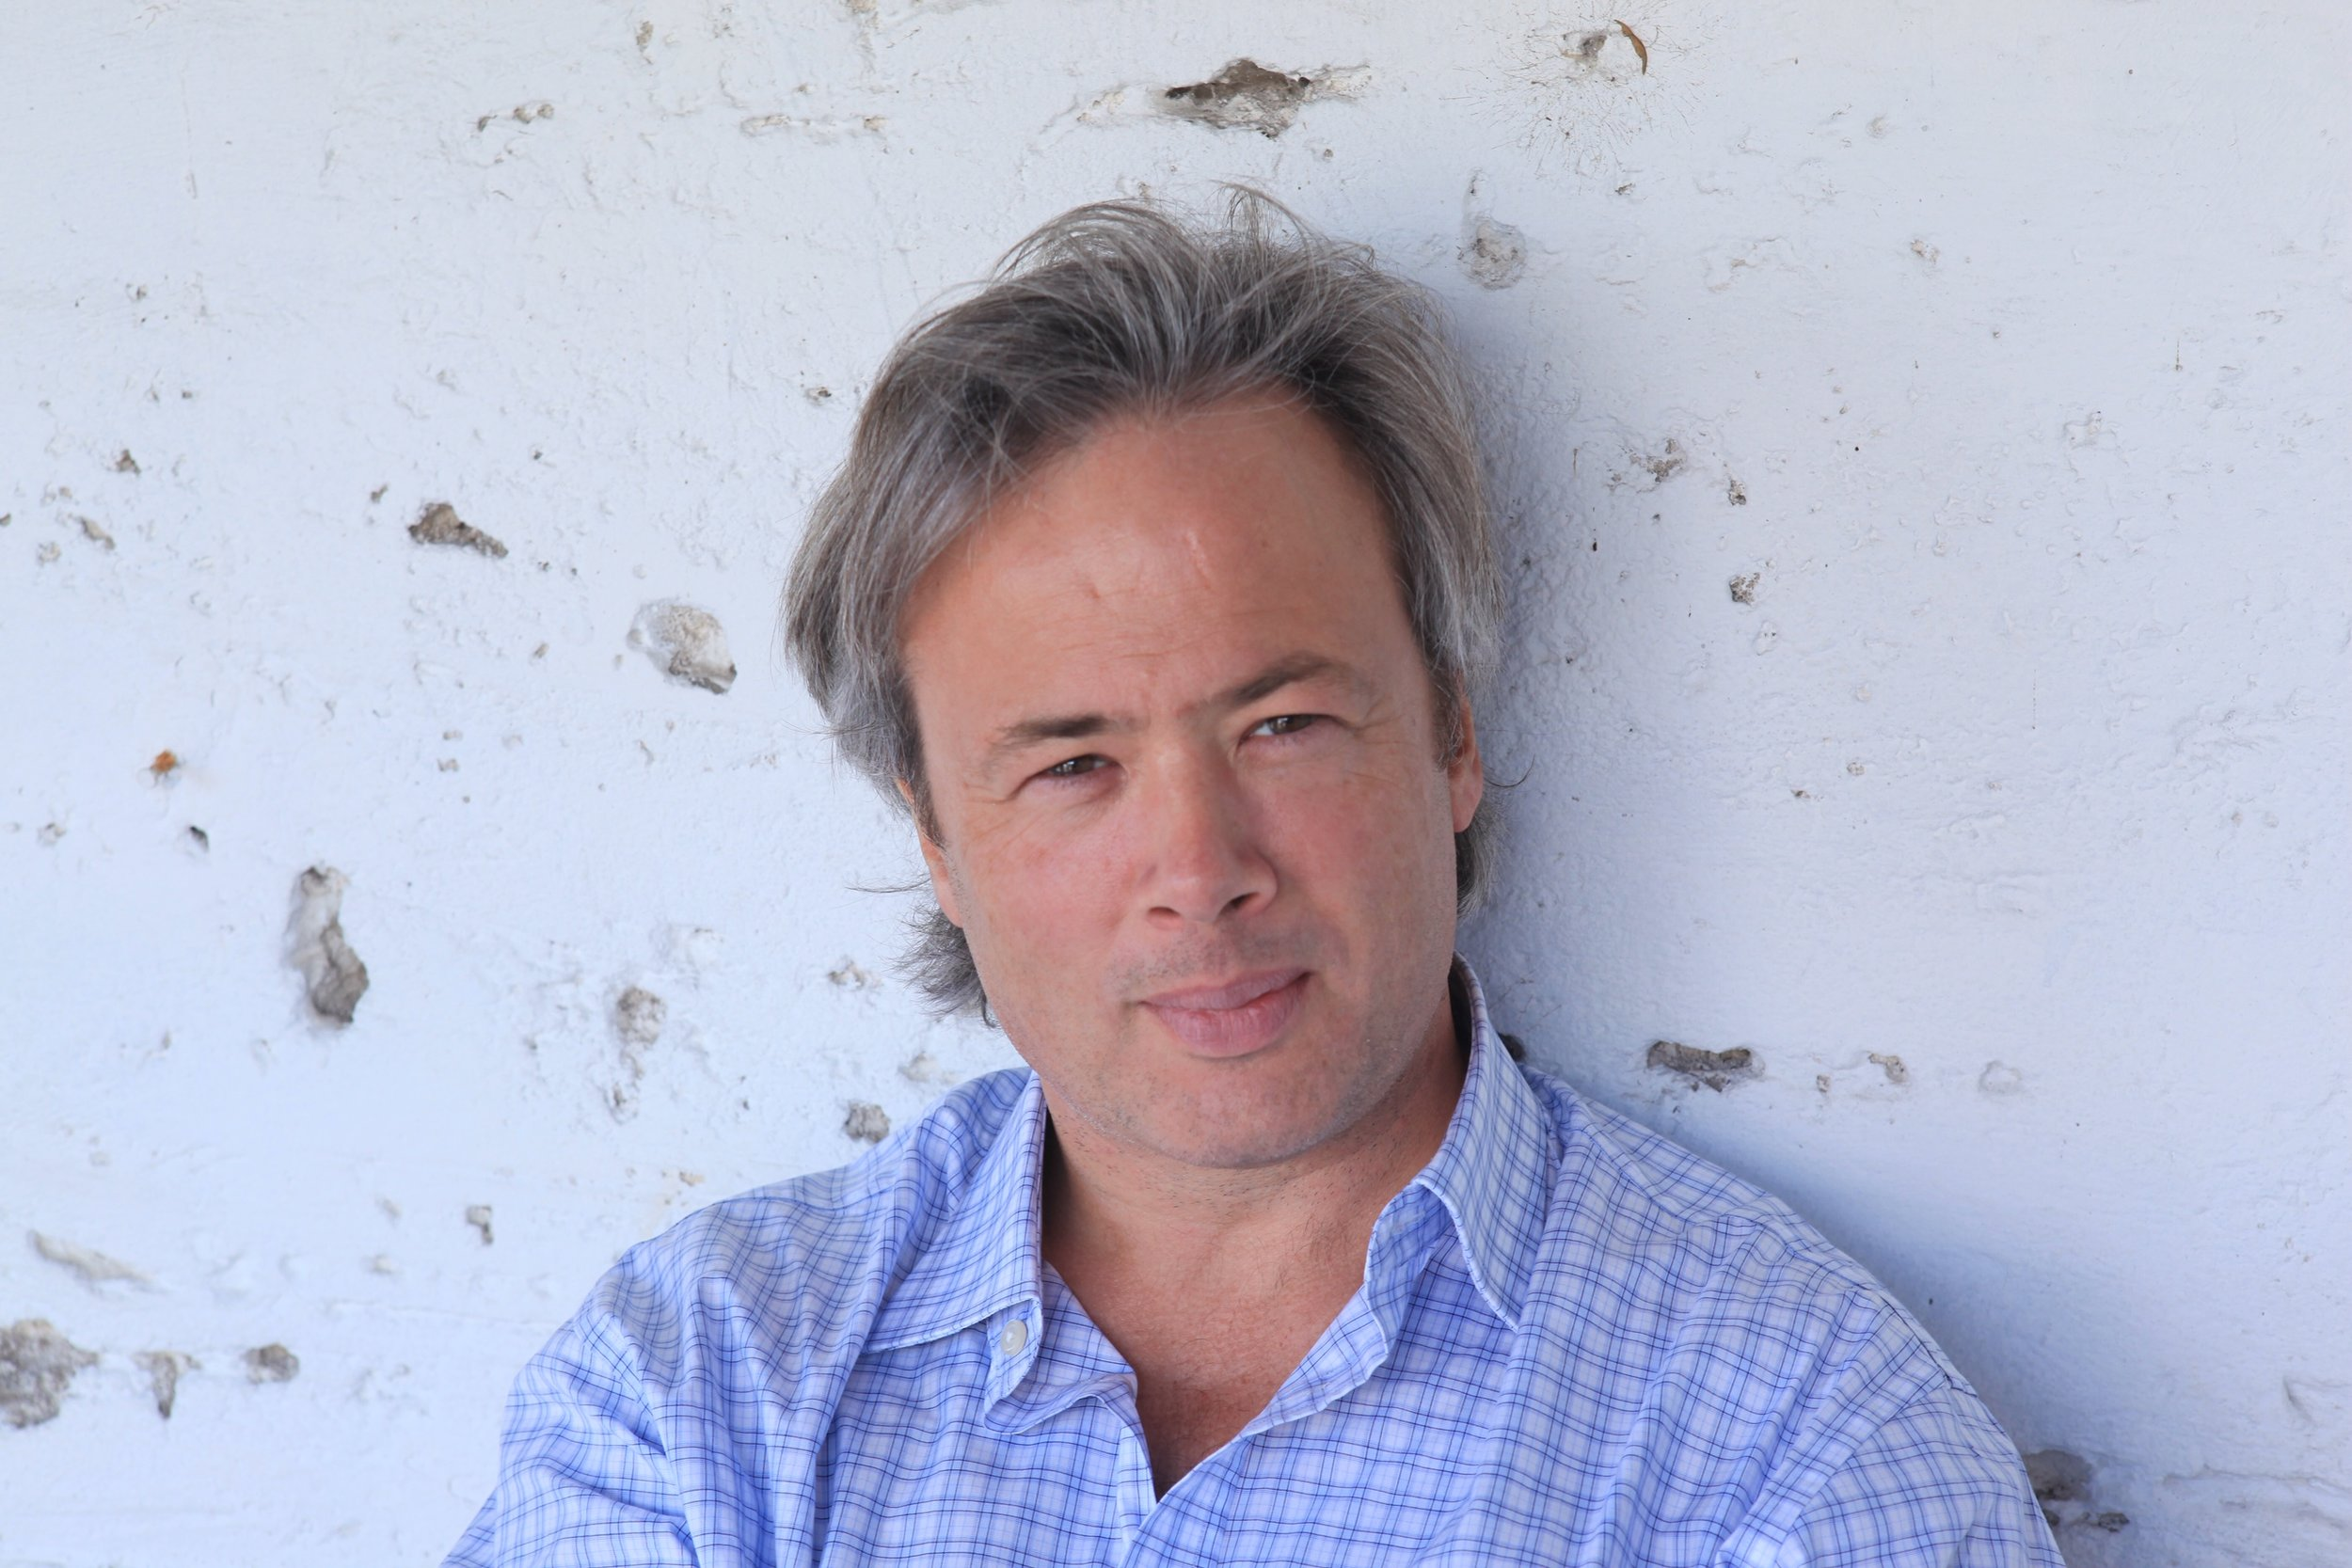 Nick Wheeler   Nick Wheeler founded Charles Tyrwhitt in 1986. The company sells shirts online, by mail and through 38 stores in the UK, USA and Germany. With sales of £211MM the business focuses on delivering outstanding product and an outstanding level of customer service. Nick is married to Chrissie Rucker, founder of The White Company.  Nick's hobbies and interests are flying (helicopters), ski-ing, cycling (Lands End to John O Groats this September), tennis, shooting and photography.